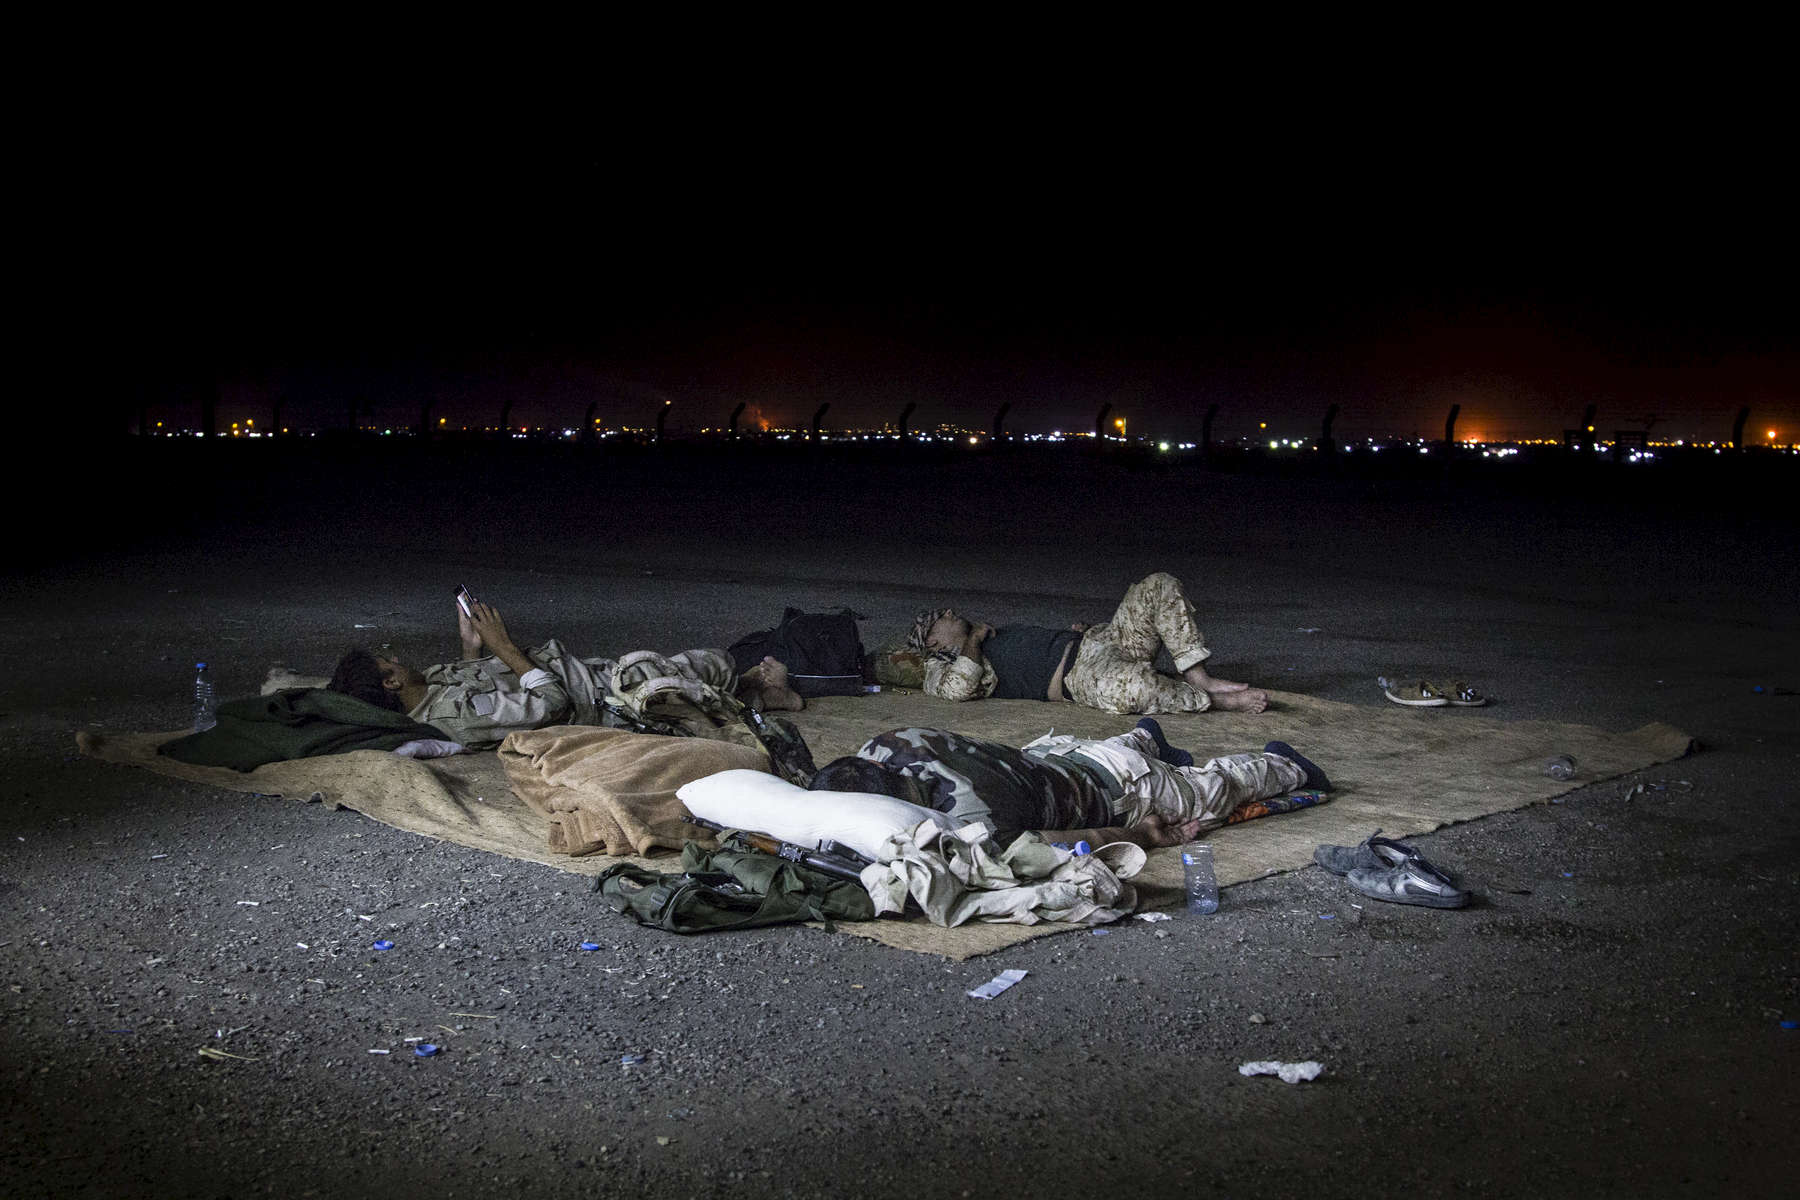 KIRKUK, IRAQ: Peshmerga sleep outside at Maktabi Khalid Peshmerga base on the outskirts of Kirkuk.Peshmerga are the Kurdish military forces. Those based at Maktabi Khalid play both support and combat roles in the conflict with Sunni militants led by the Islamic State of Iraq and al-Sham, who recently took all but 50km of the territory that borders the semi-autonomous region of Iraq Kurdistan.Credit: Hawre Khalid/Metrography